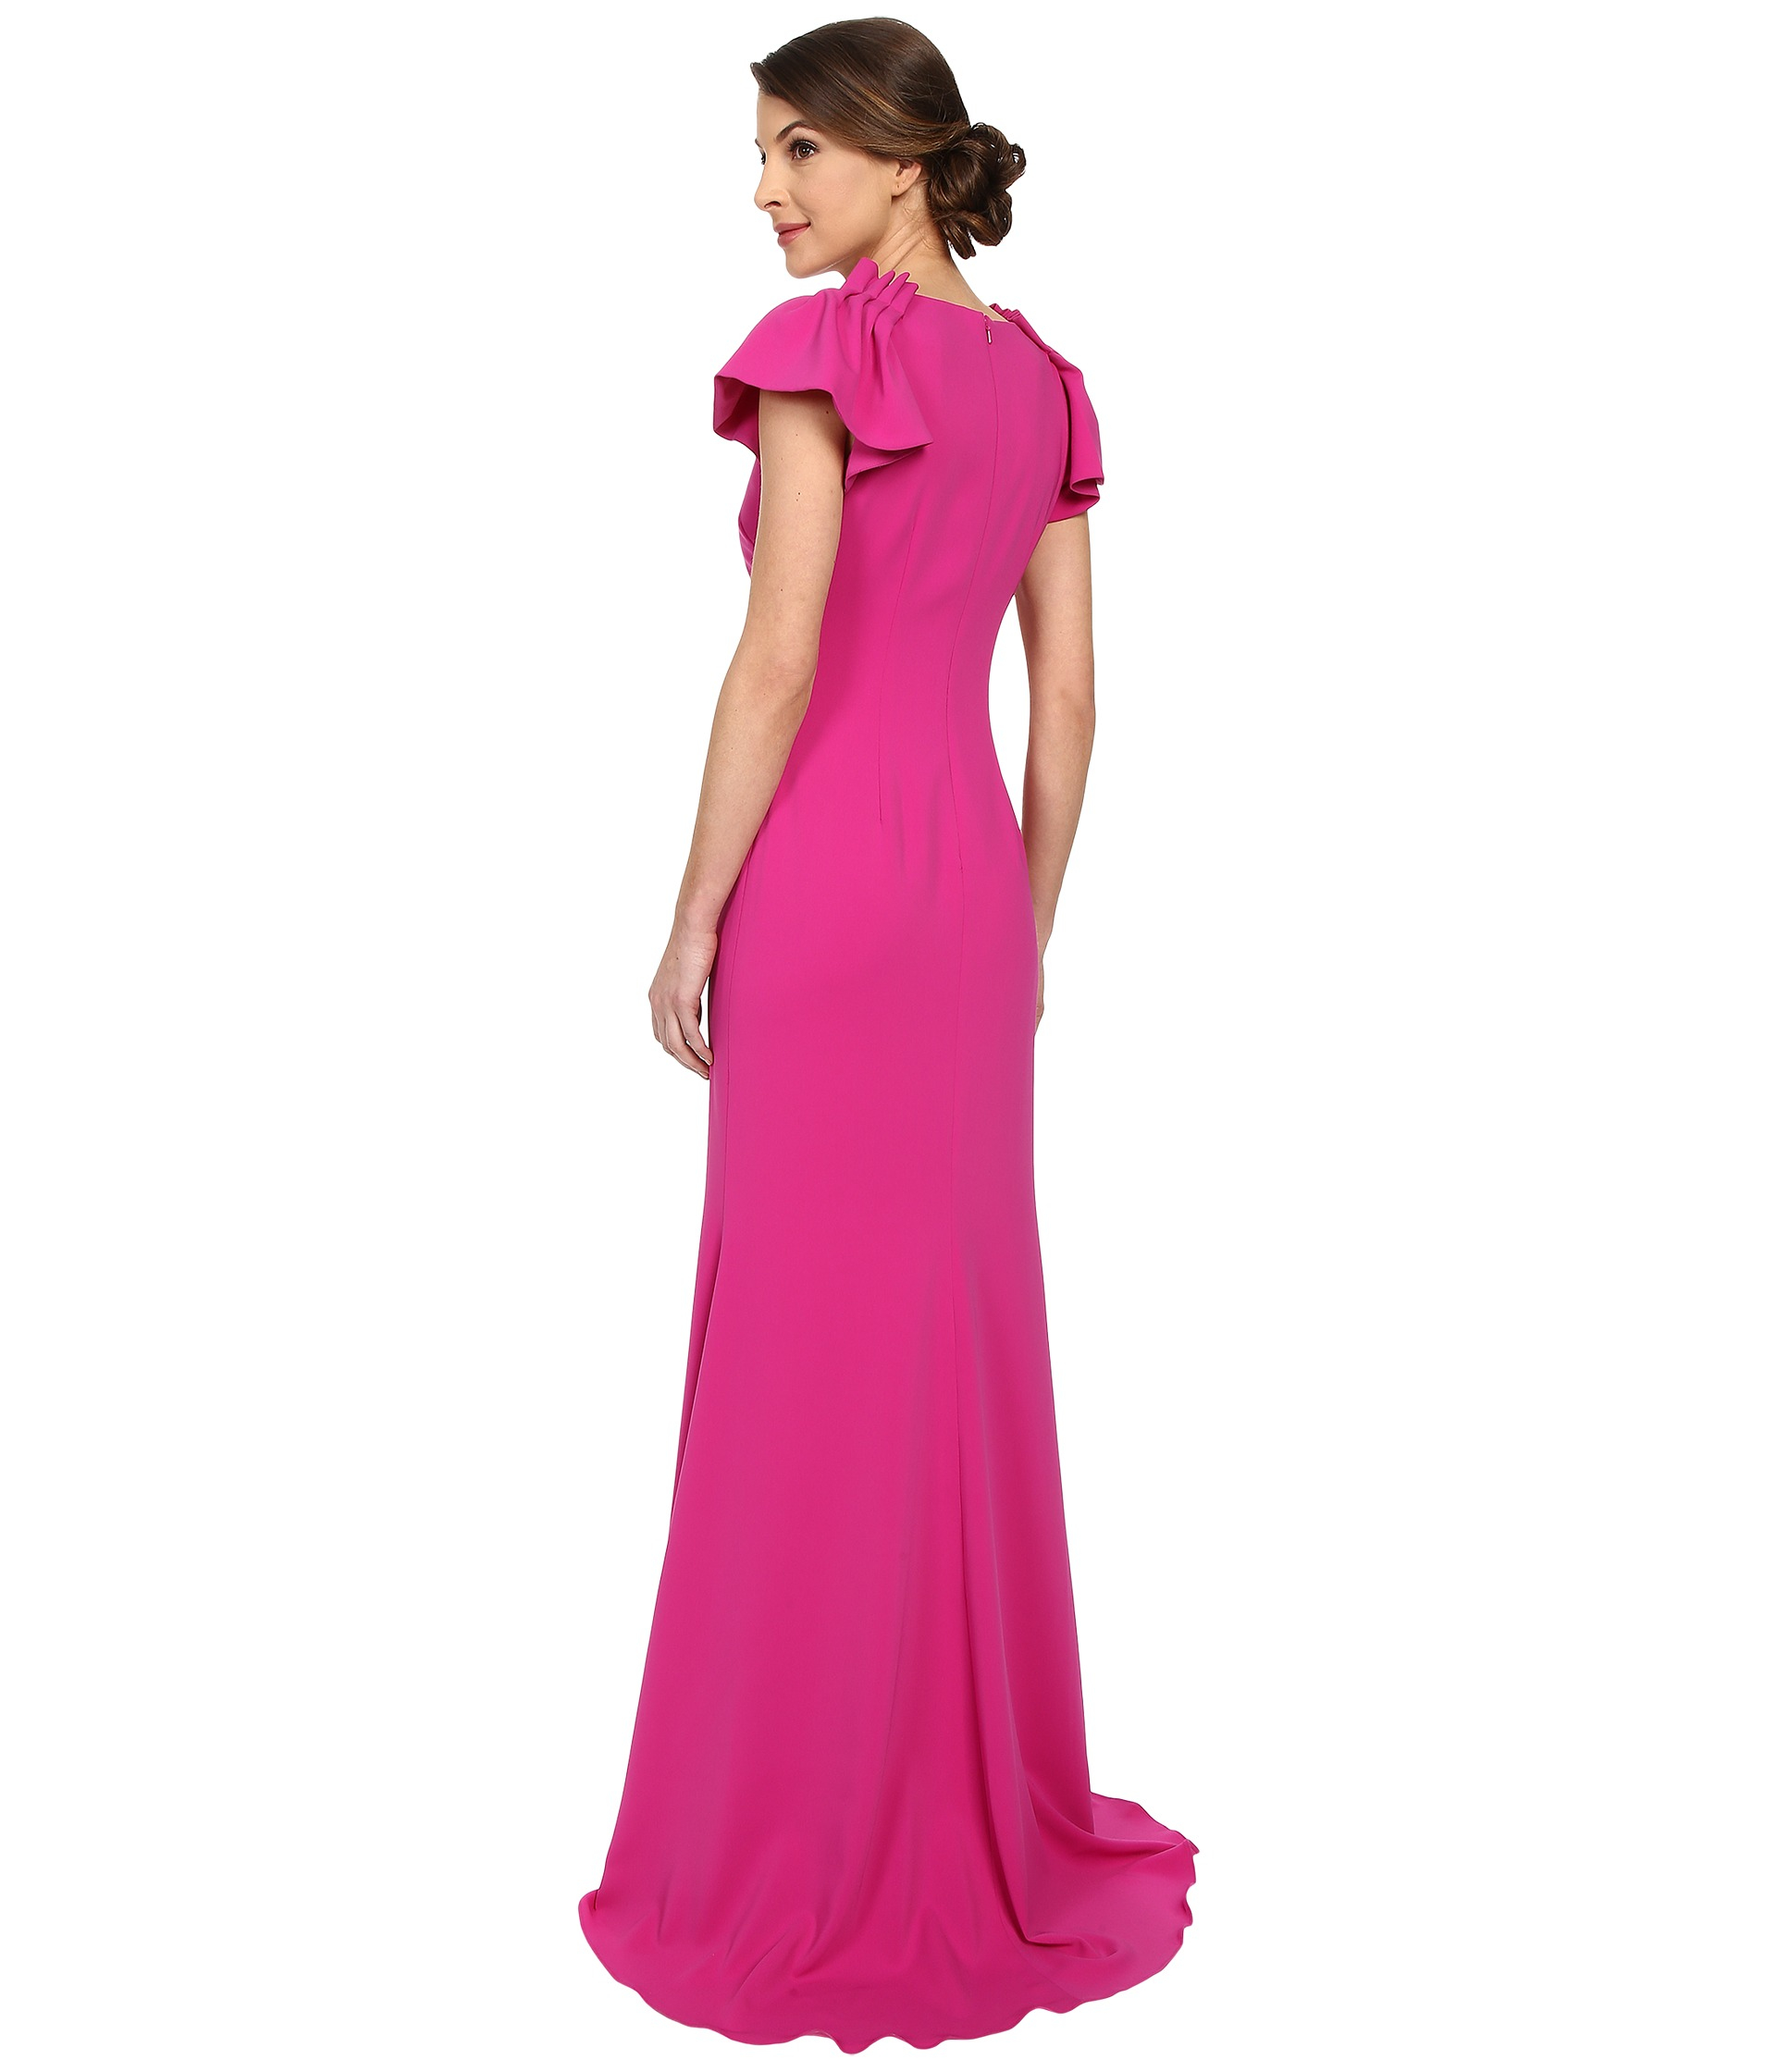 Lyst - Badgley Mischka Ruffle Sleeve V-neck Gown in Purple